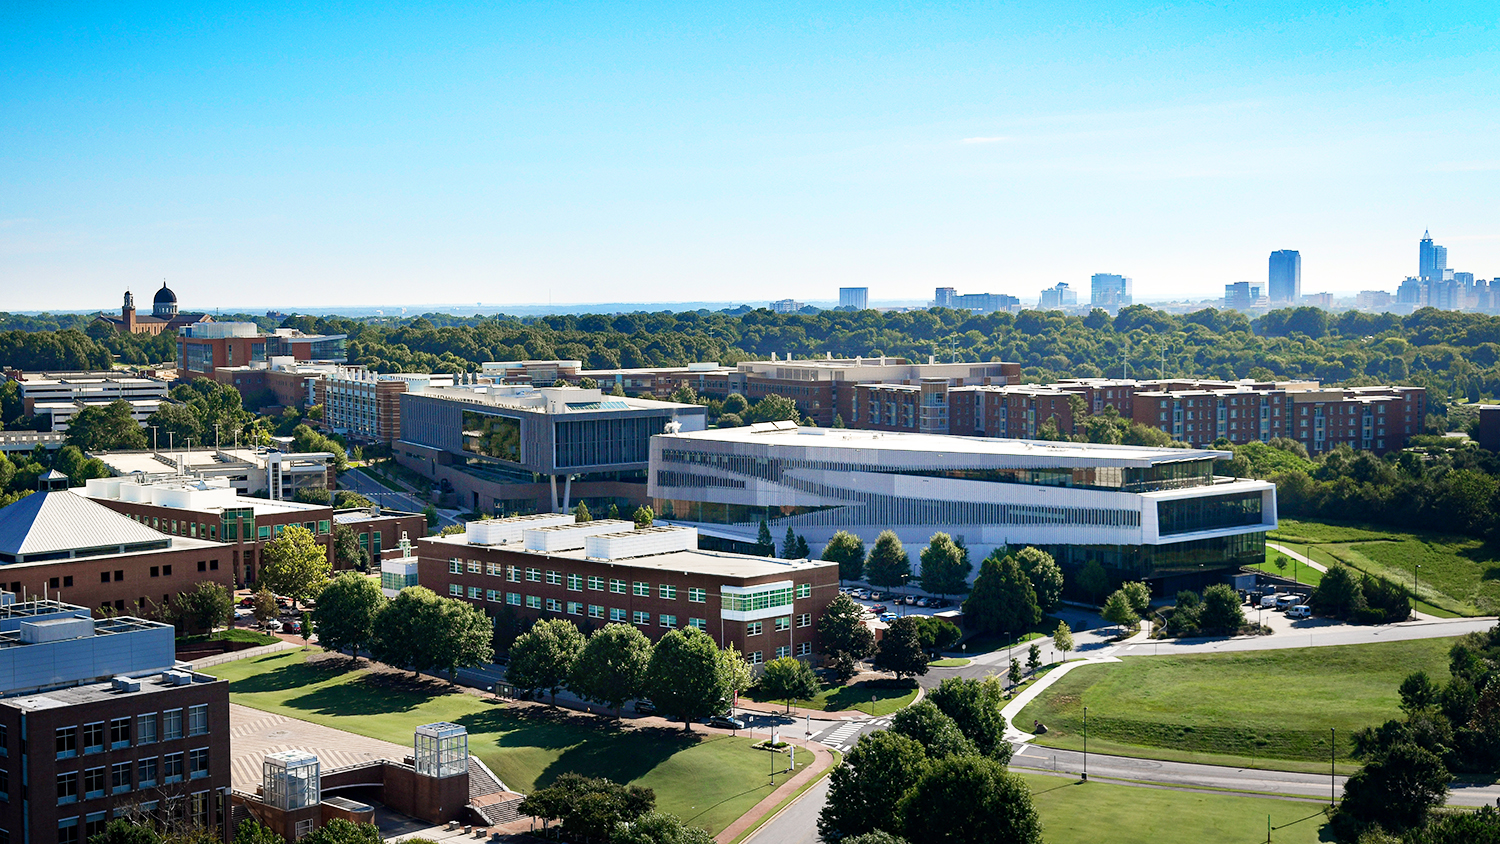 Aerial view of Centennial Campus looking towards downtown Raleigh, NC.